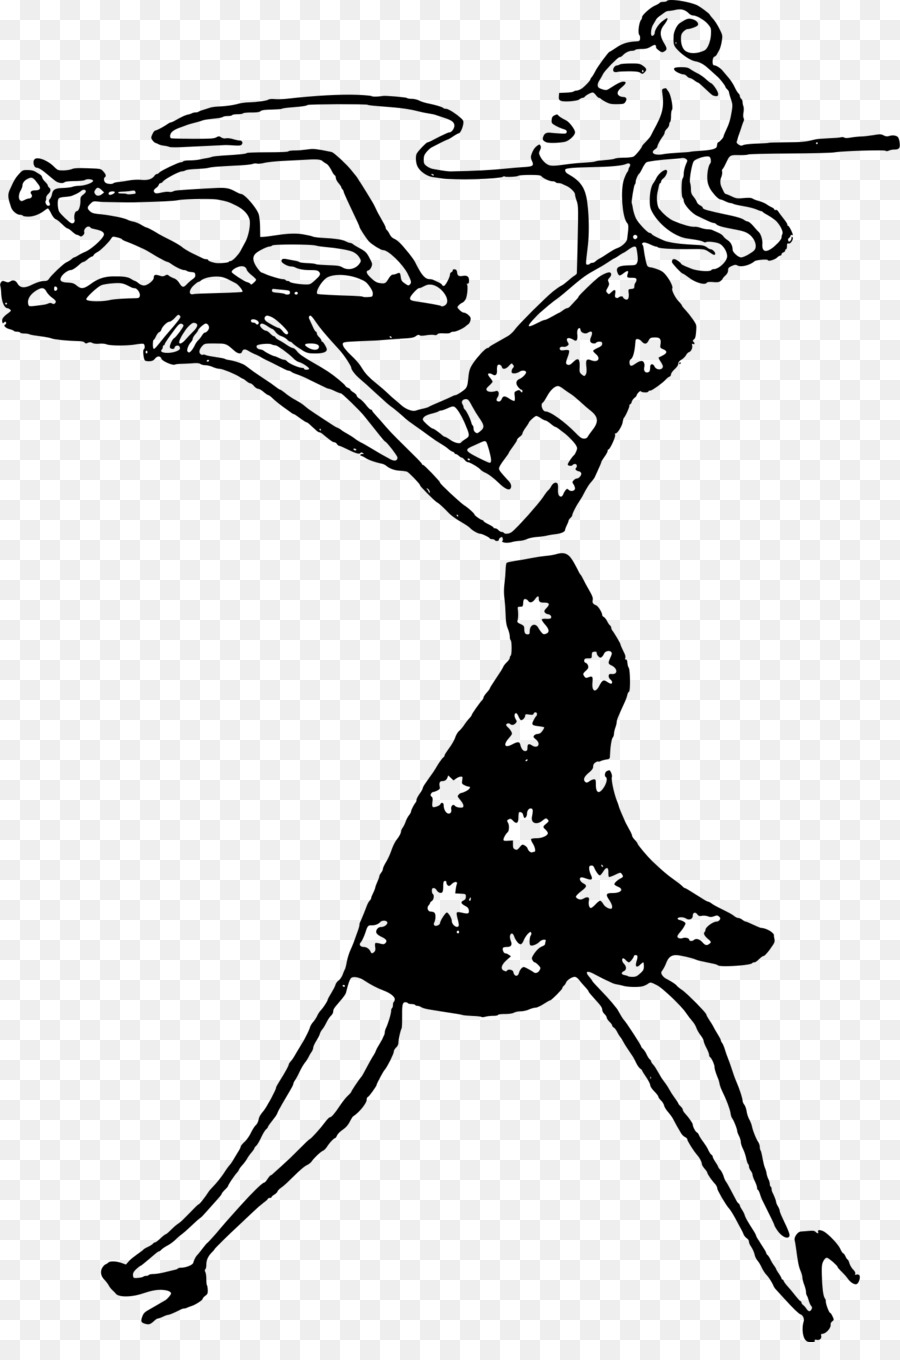 medium resolution of housewife turkey meat woman line art silhouette png